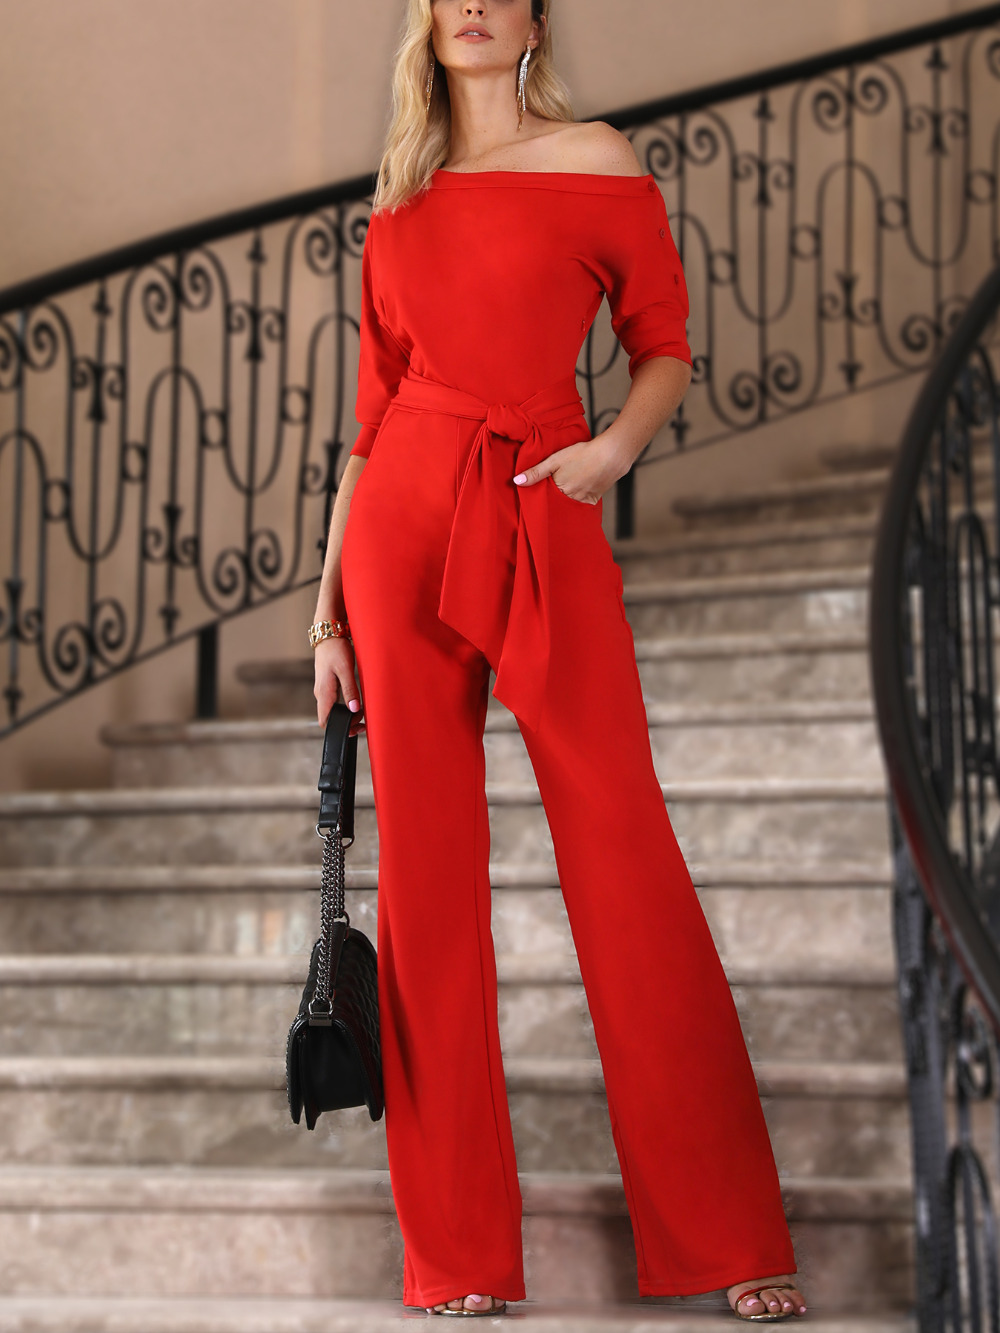 2018 New Fashion Summer Women Stylish Plus Size XXL Casual Elegant Office Jumpsuit Solid One Shoulder Tied Waist Flared Jumpsuit